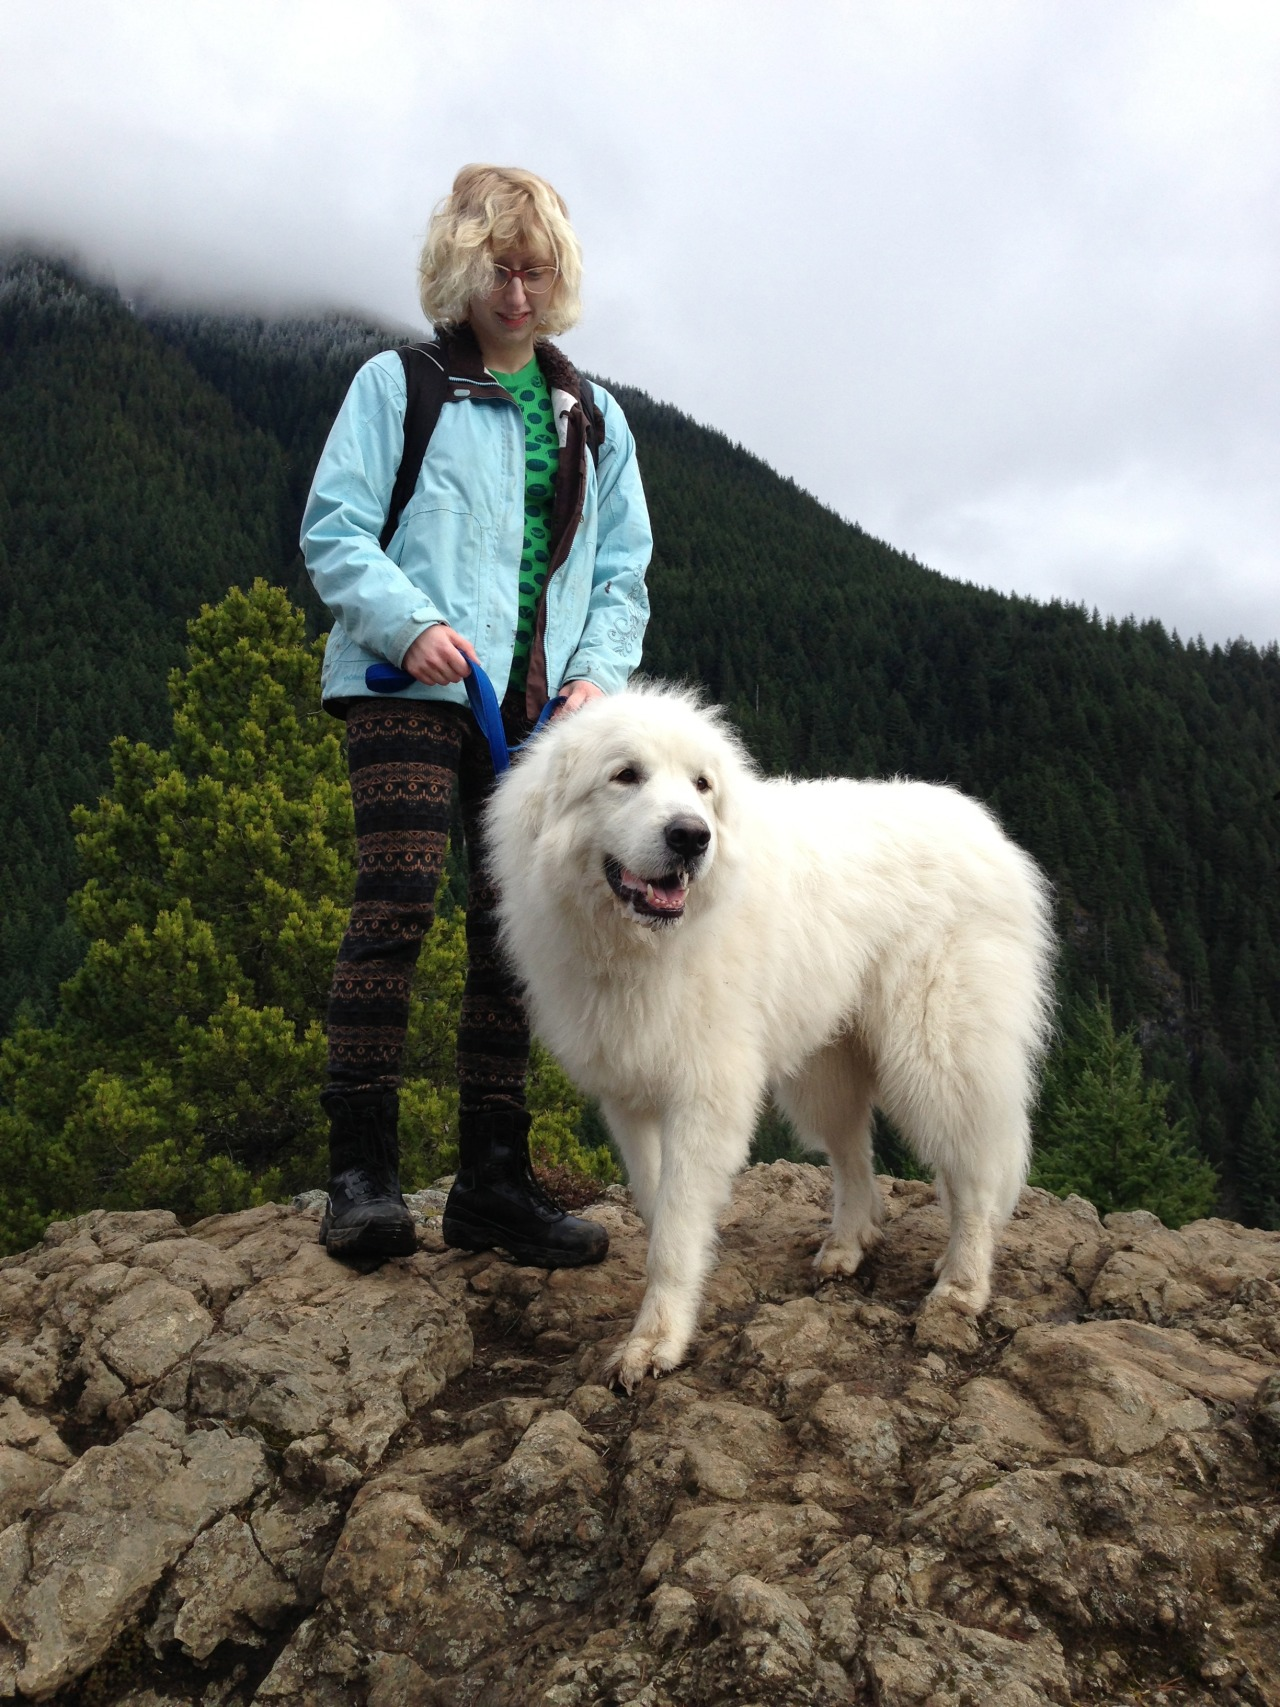 Met this fluffy polar bear at the peak!